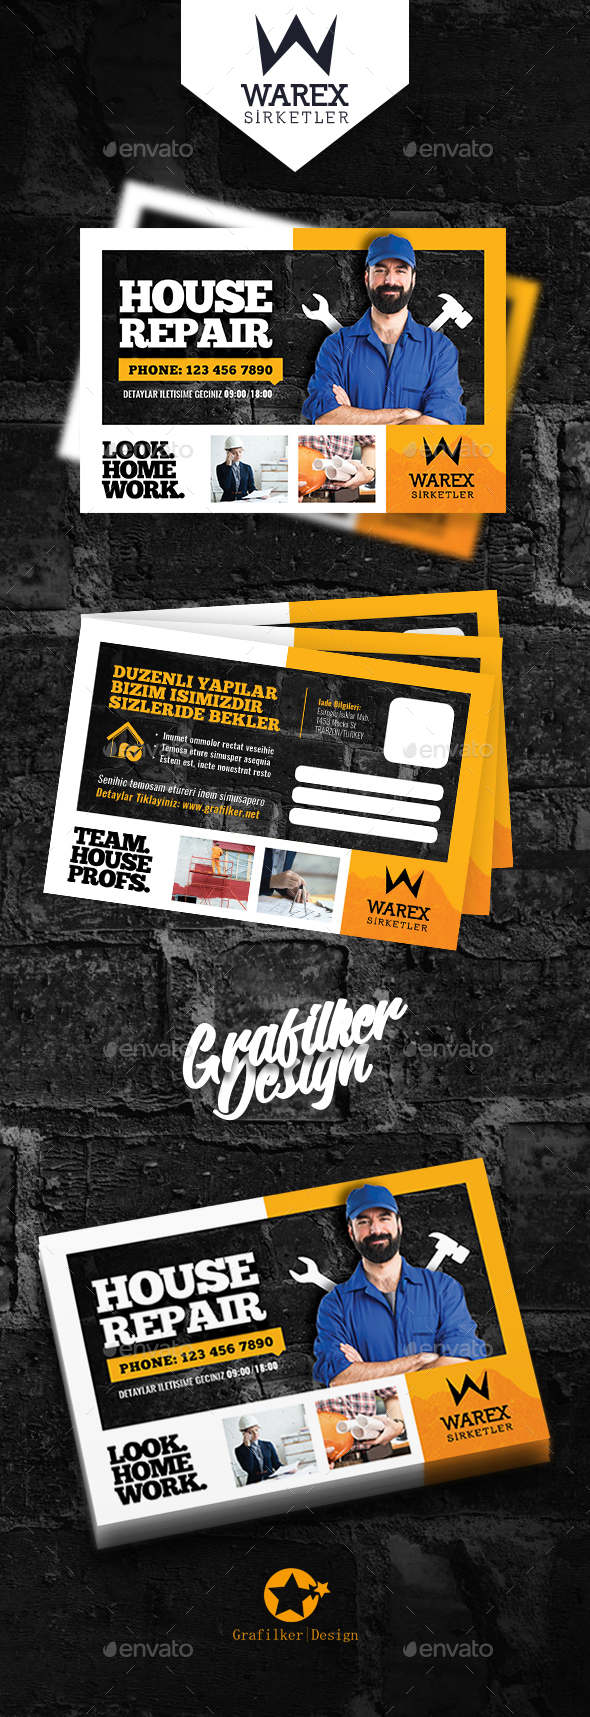 House Repair Postcard Templates - Cards & Invites Print Templates